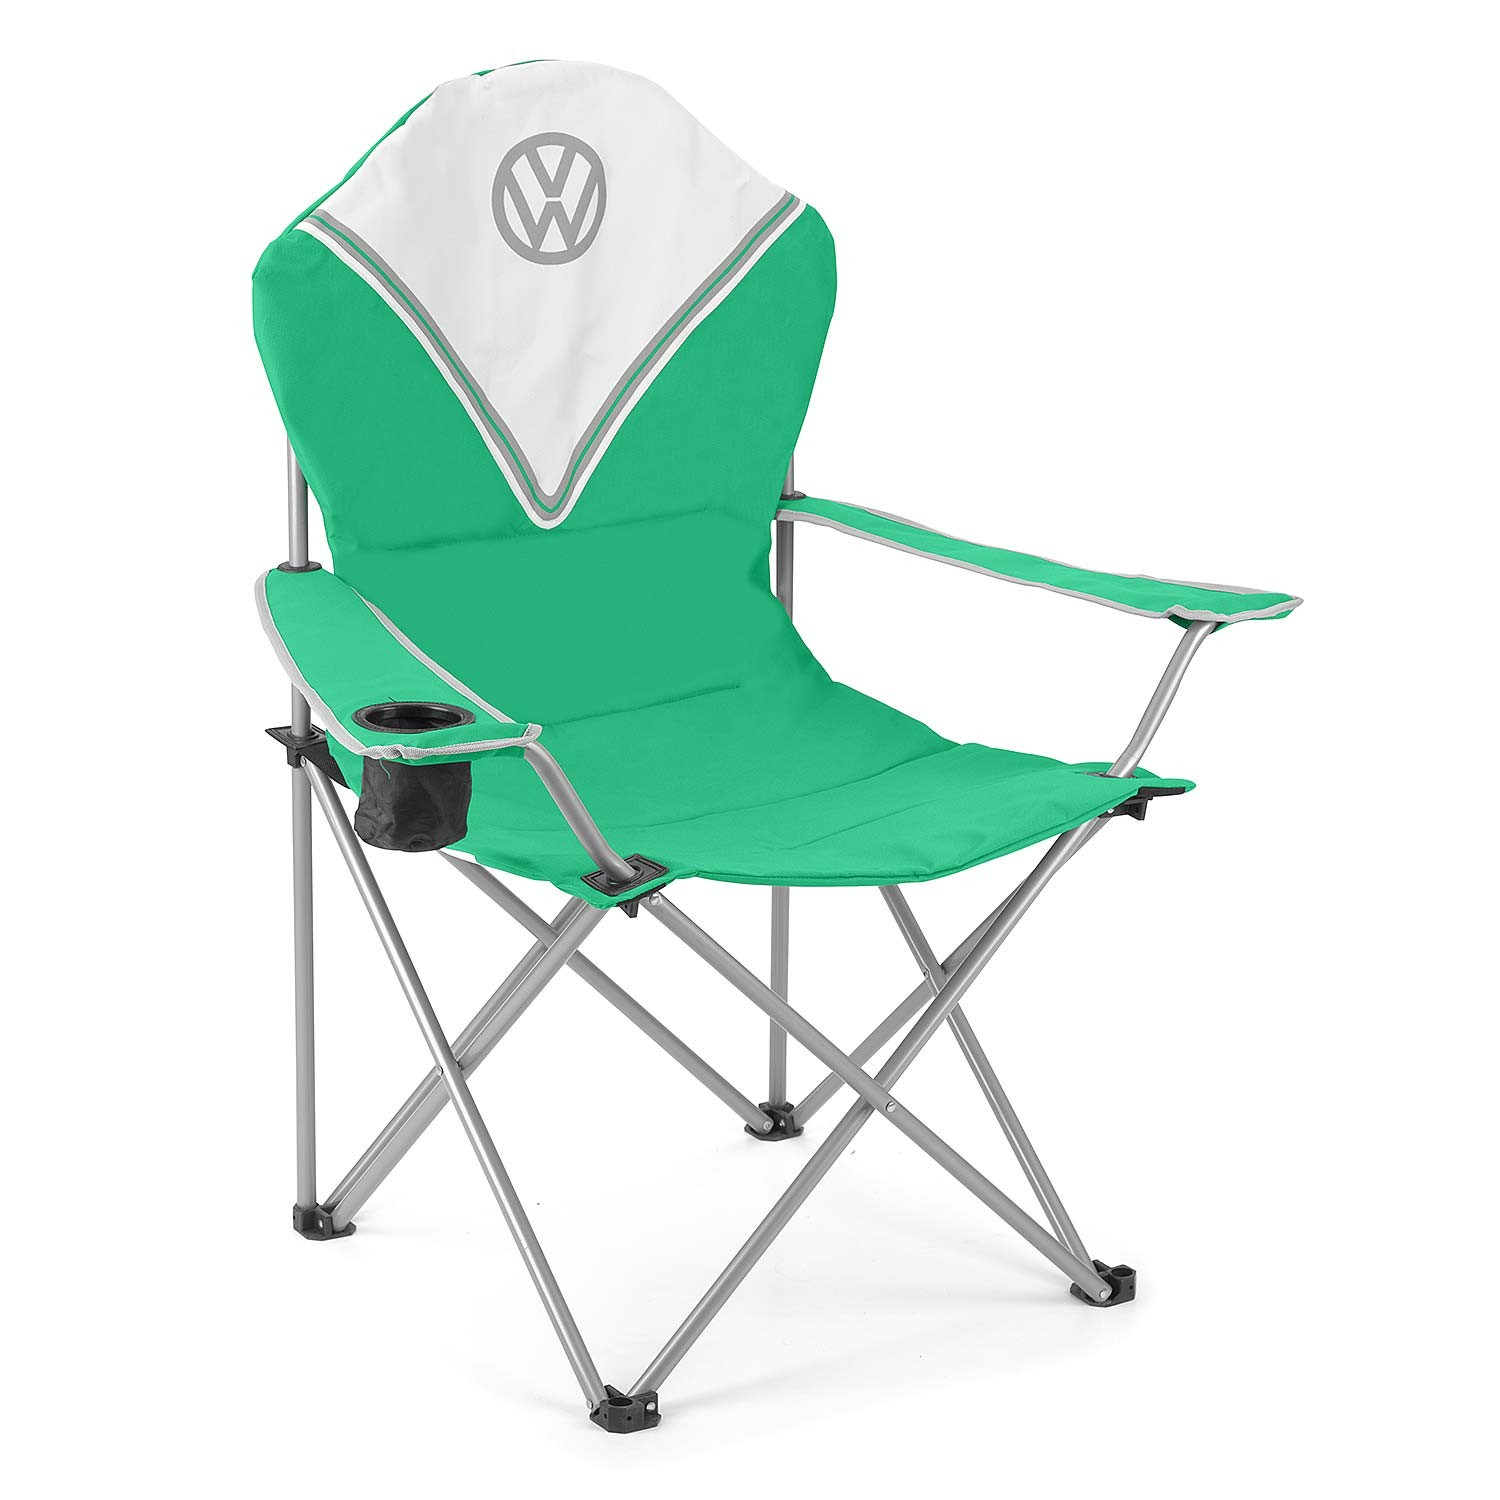 Volkswagen Deluxe Folding Camping Chair - Green